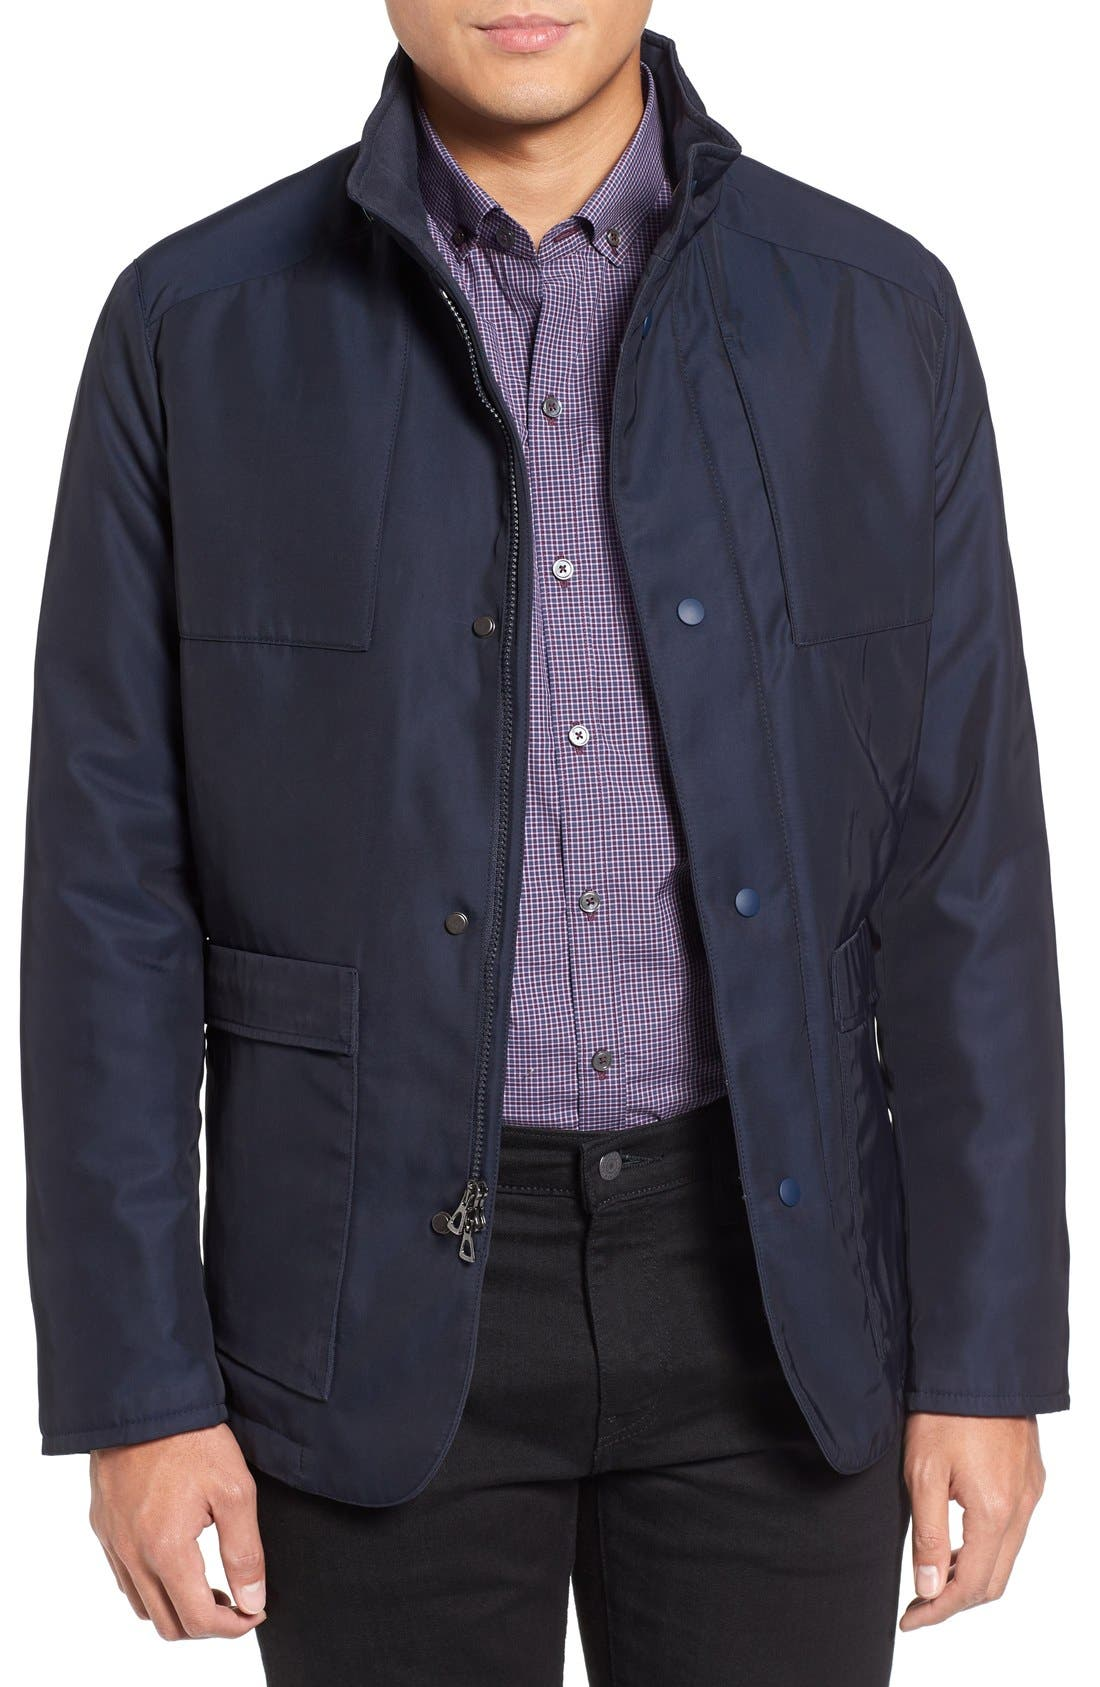 Alternate Image 1 Selected - Zachary Prell Lightweight Jacket